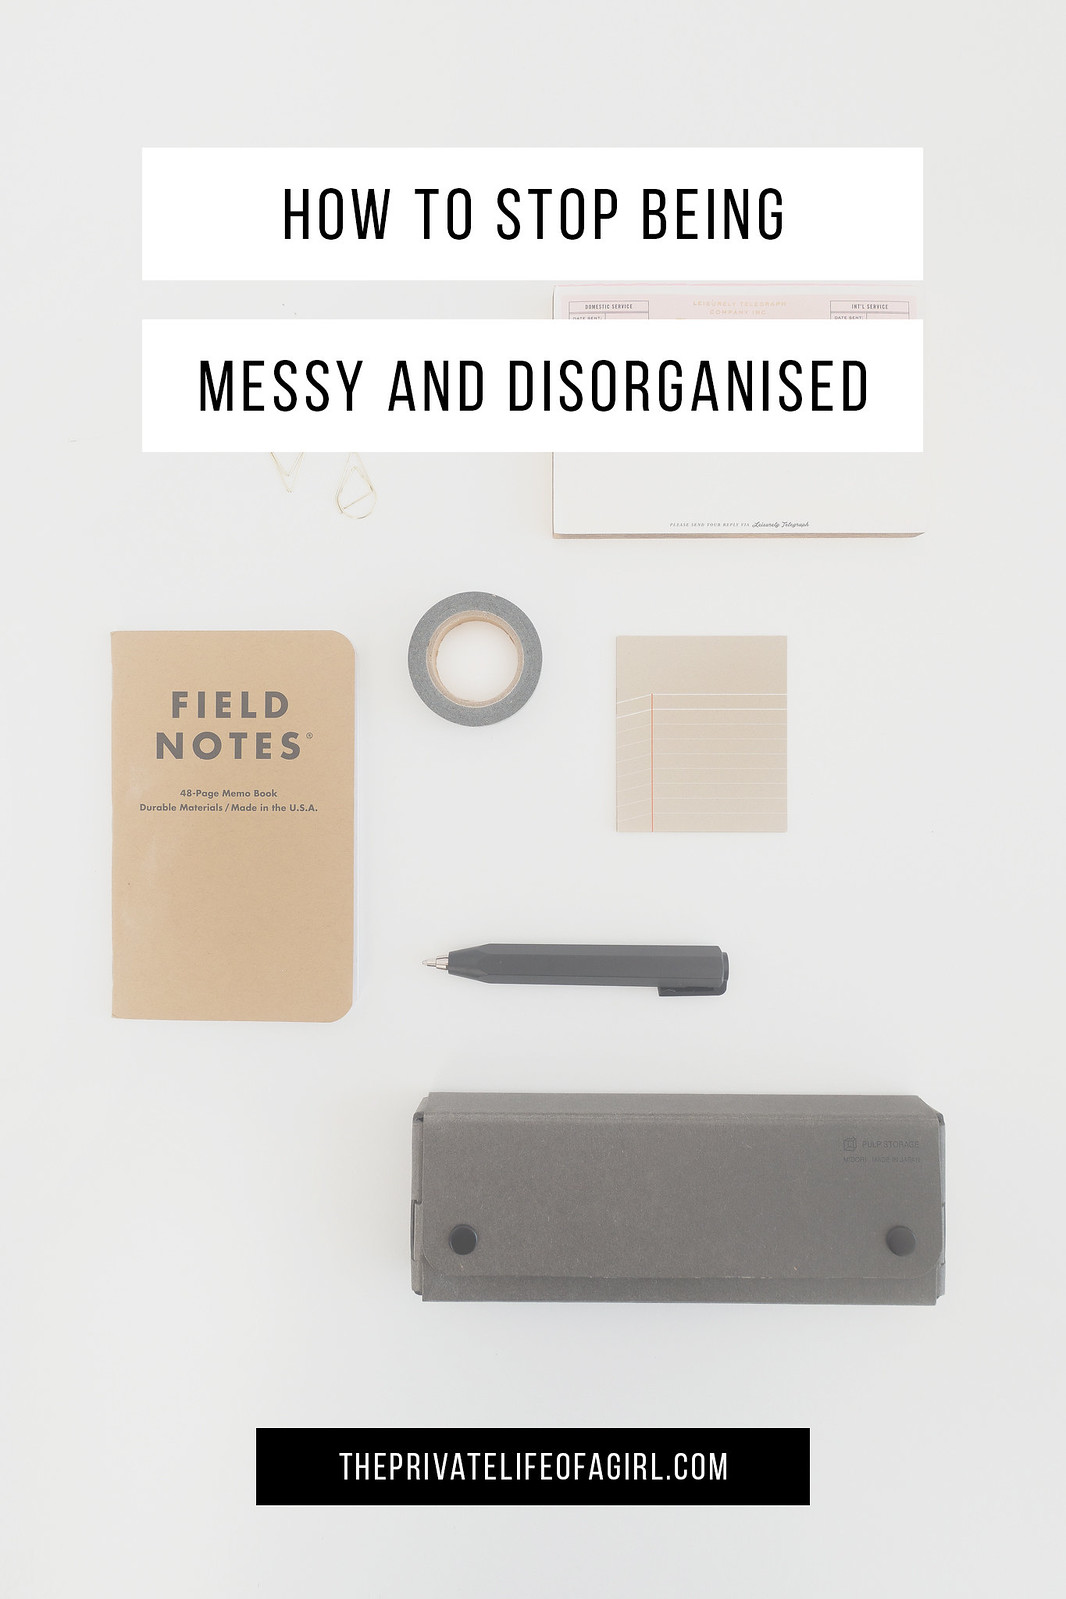 How To Stop Being Messy and Disorganised